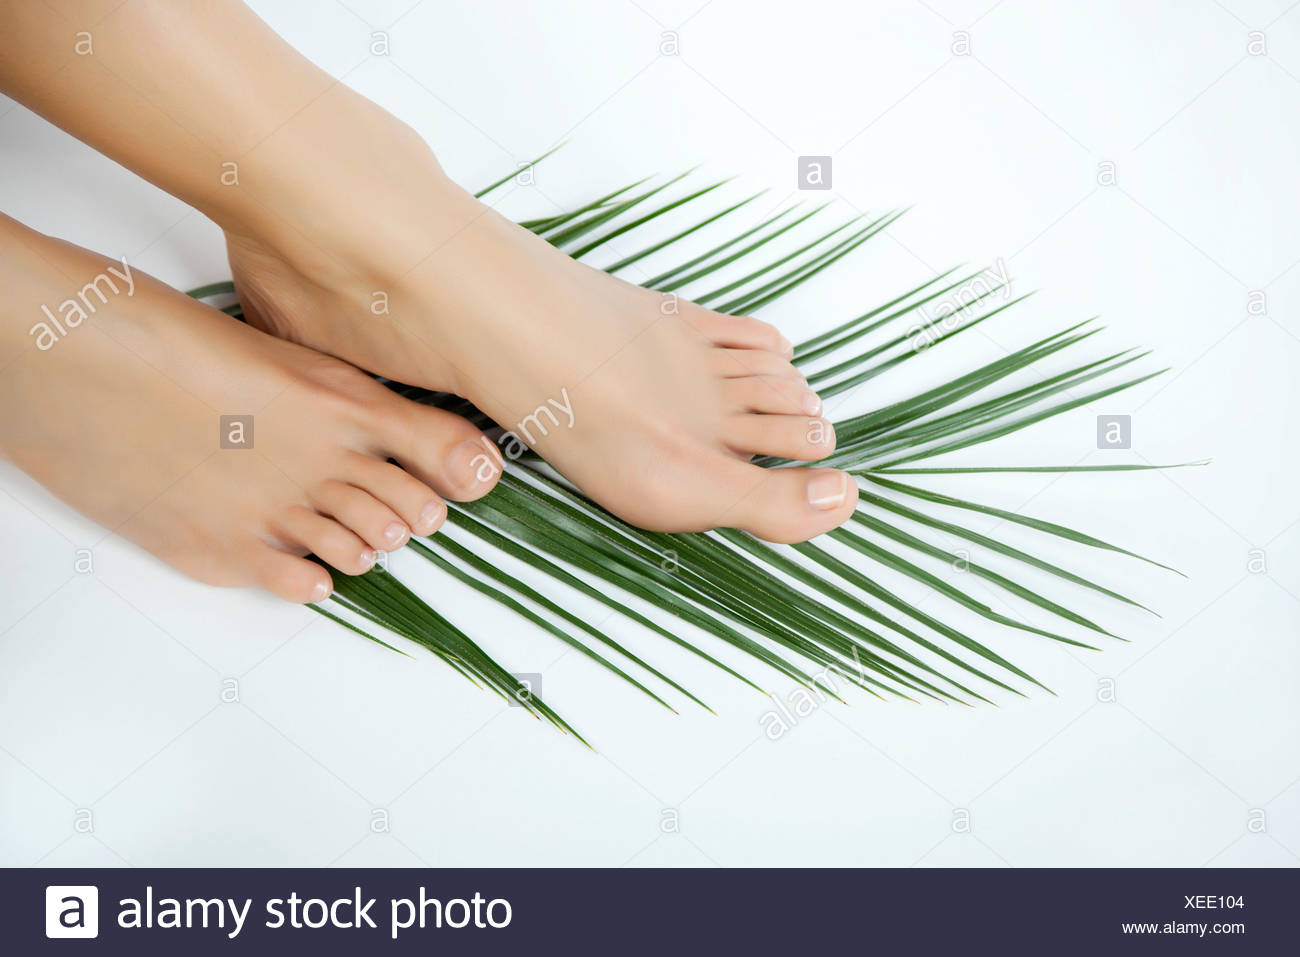 Woman's bare feet on palm frond - Stock Image